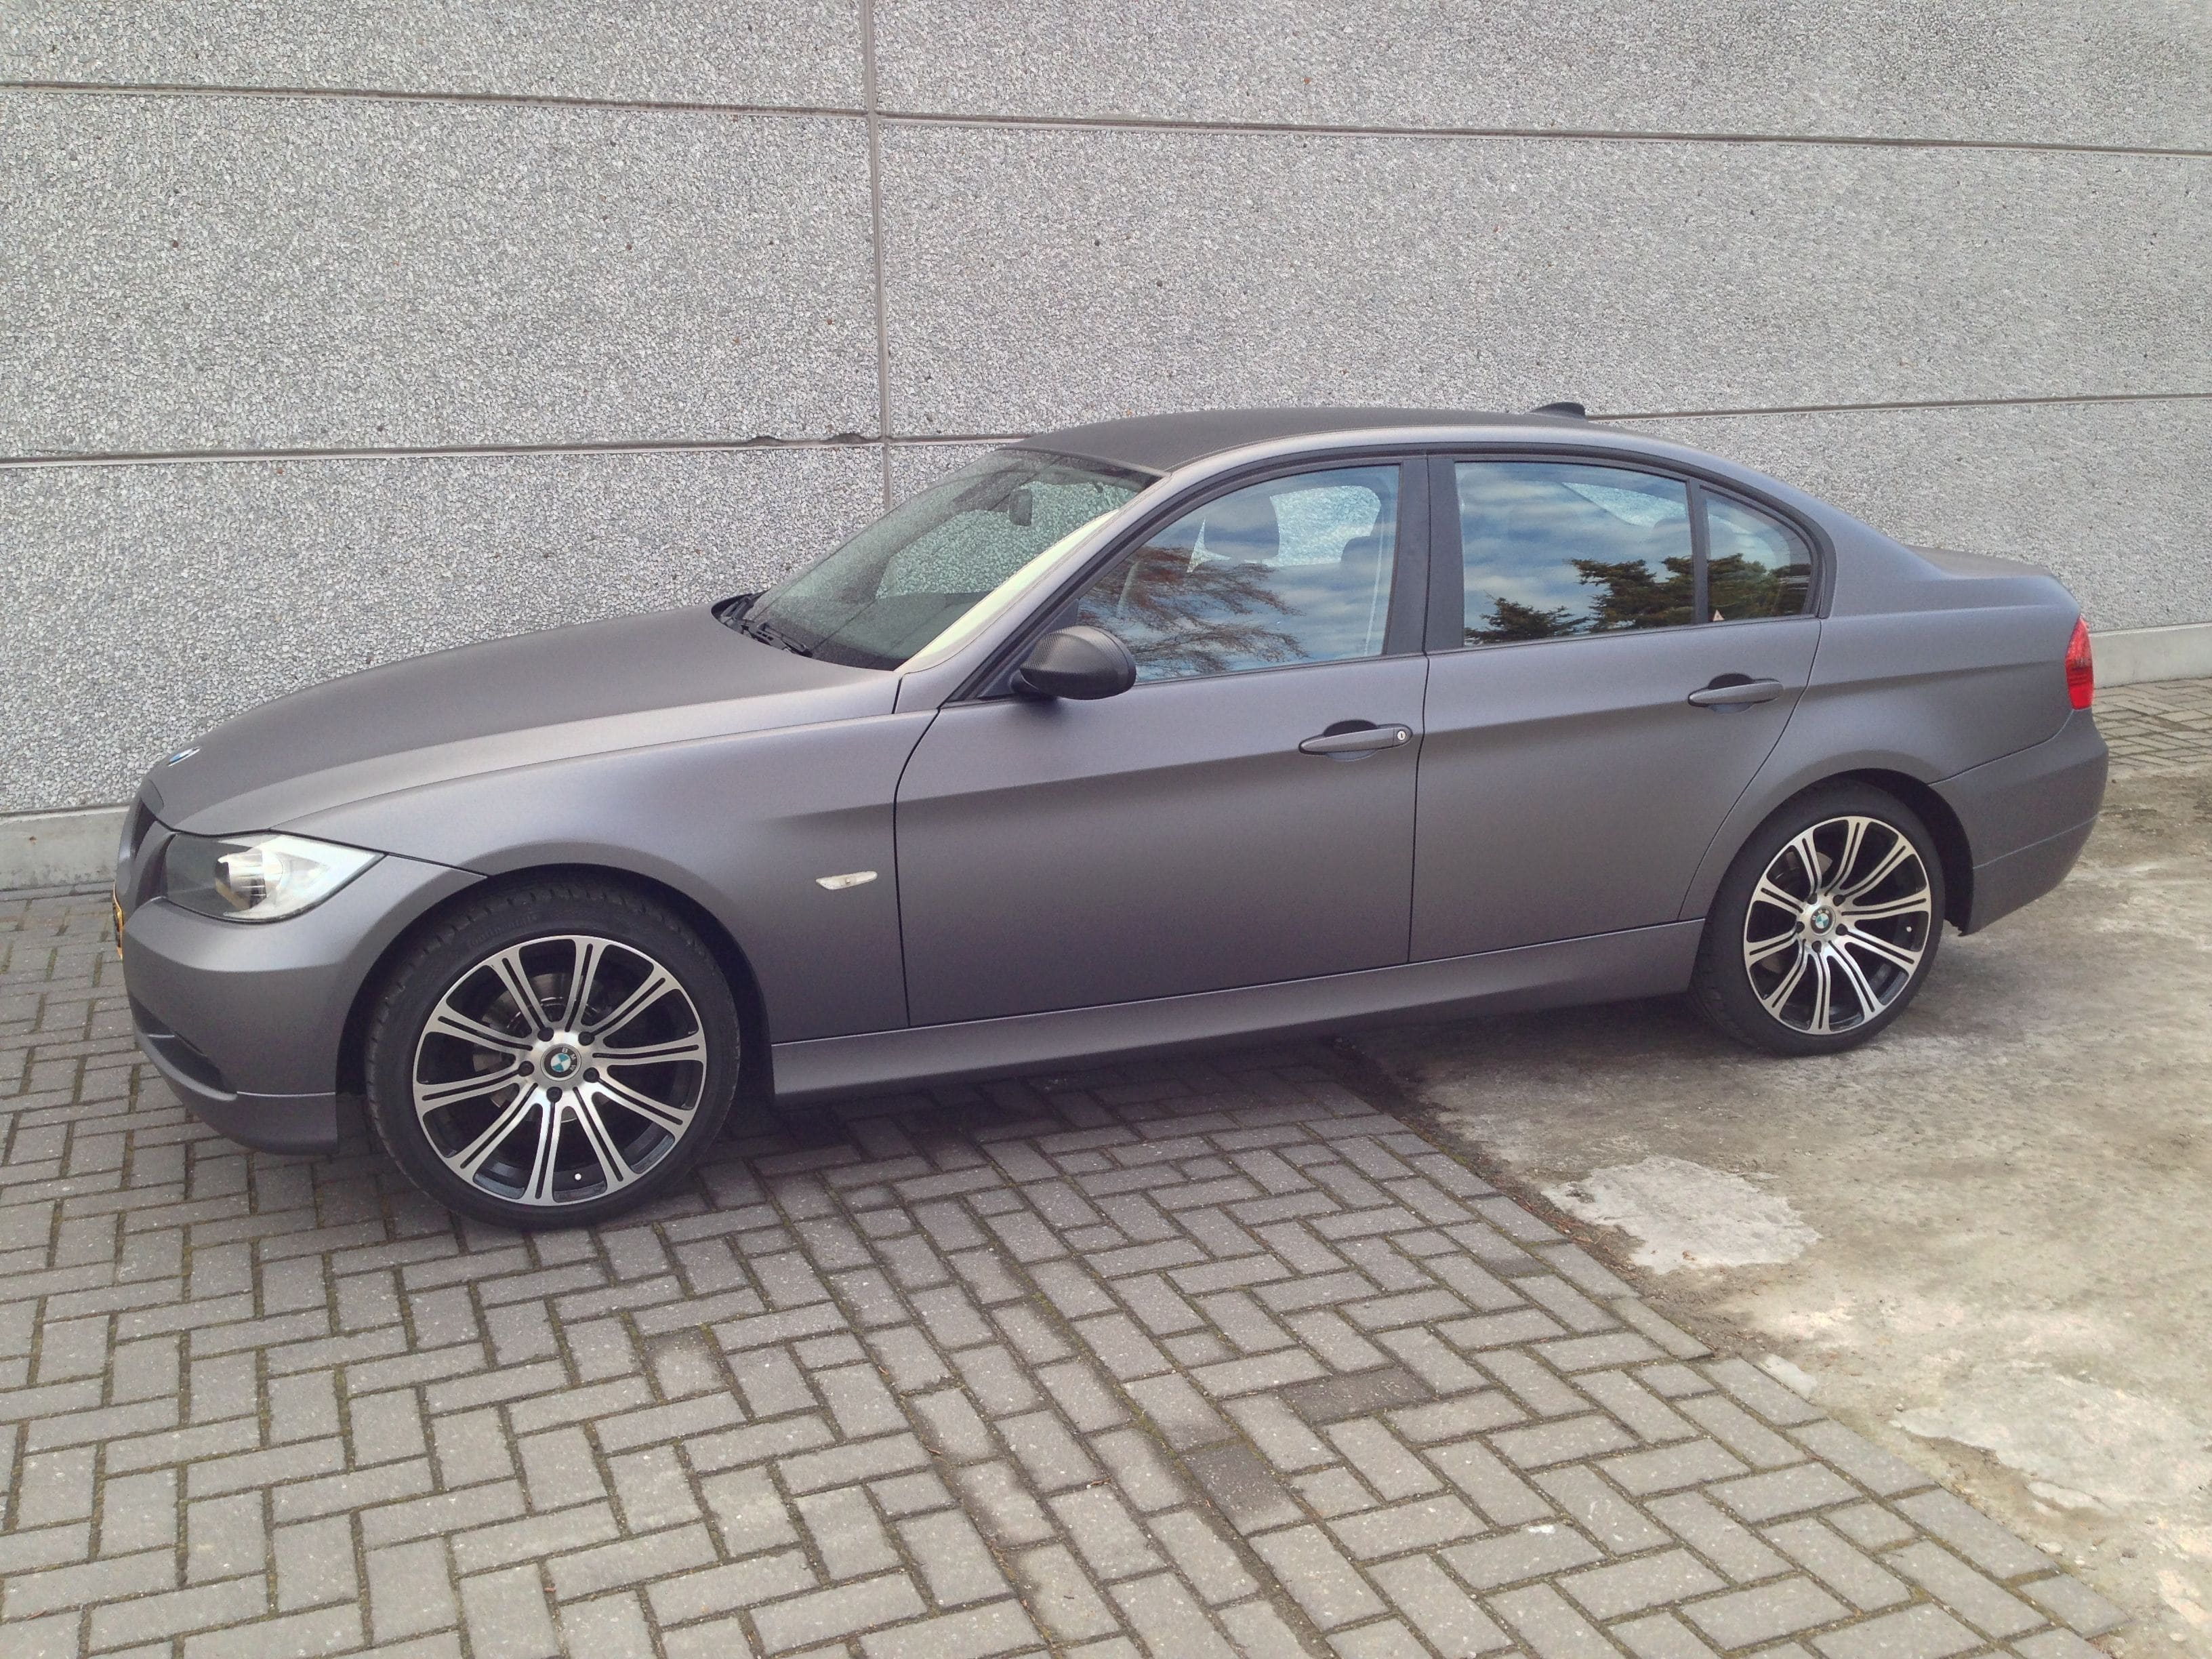 BMW E90 met Gunpowder Wrap, Carwrapping door Wrapmyride.nu Foto-nr:5392, ©2021